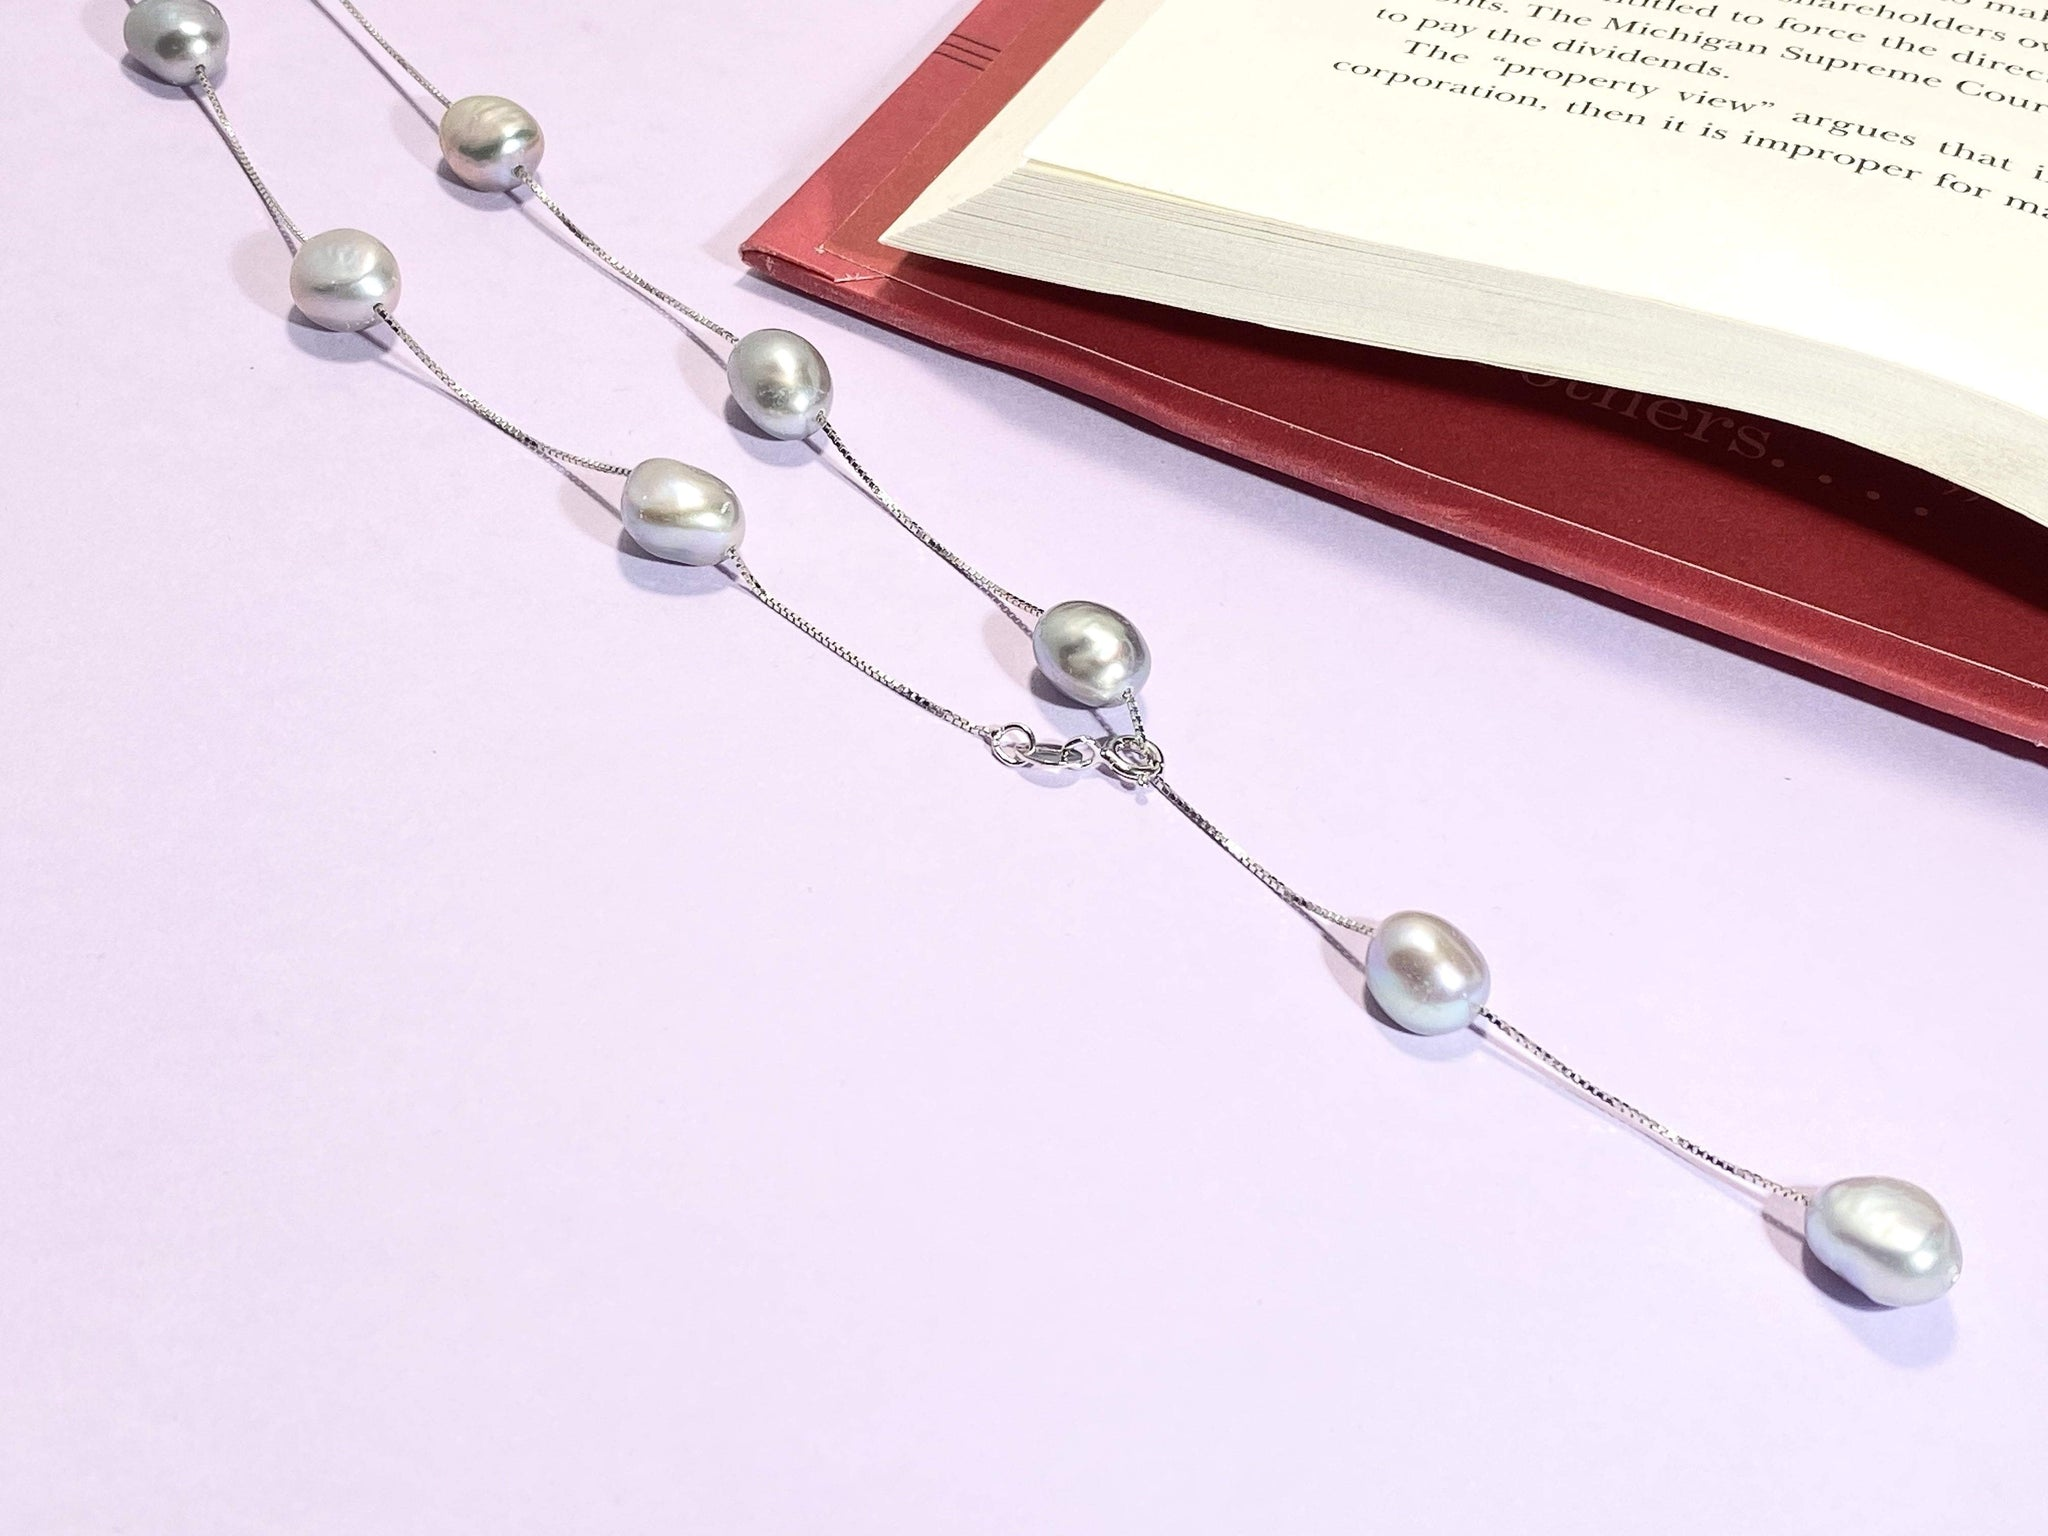 BOUGIE IN GRAY - Gray - Grey - Pearl Necklace - Love Letter Jewelry